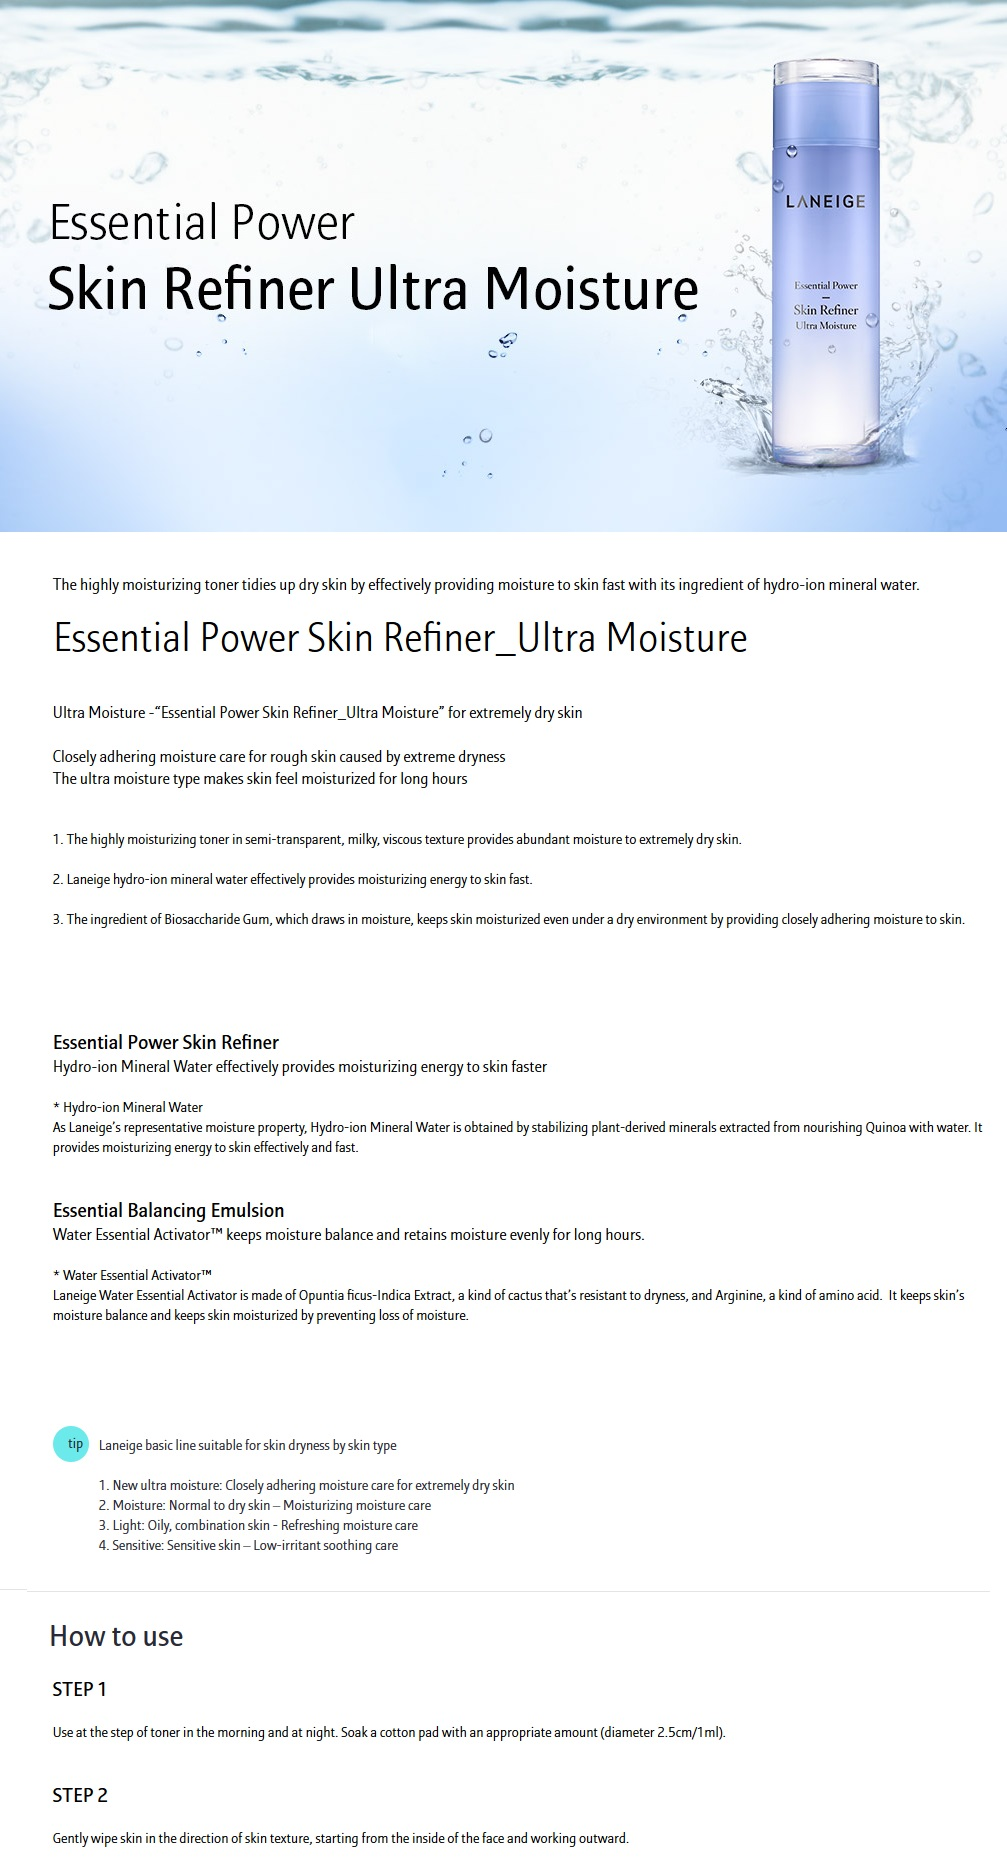 LANEIGE Essential Power Skin Refiner 200ml [Ultra Moisture]